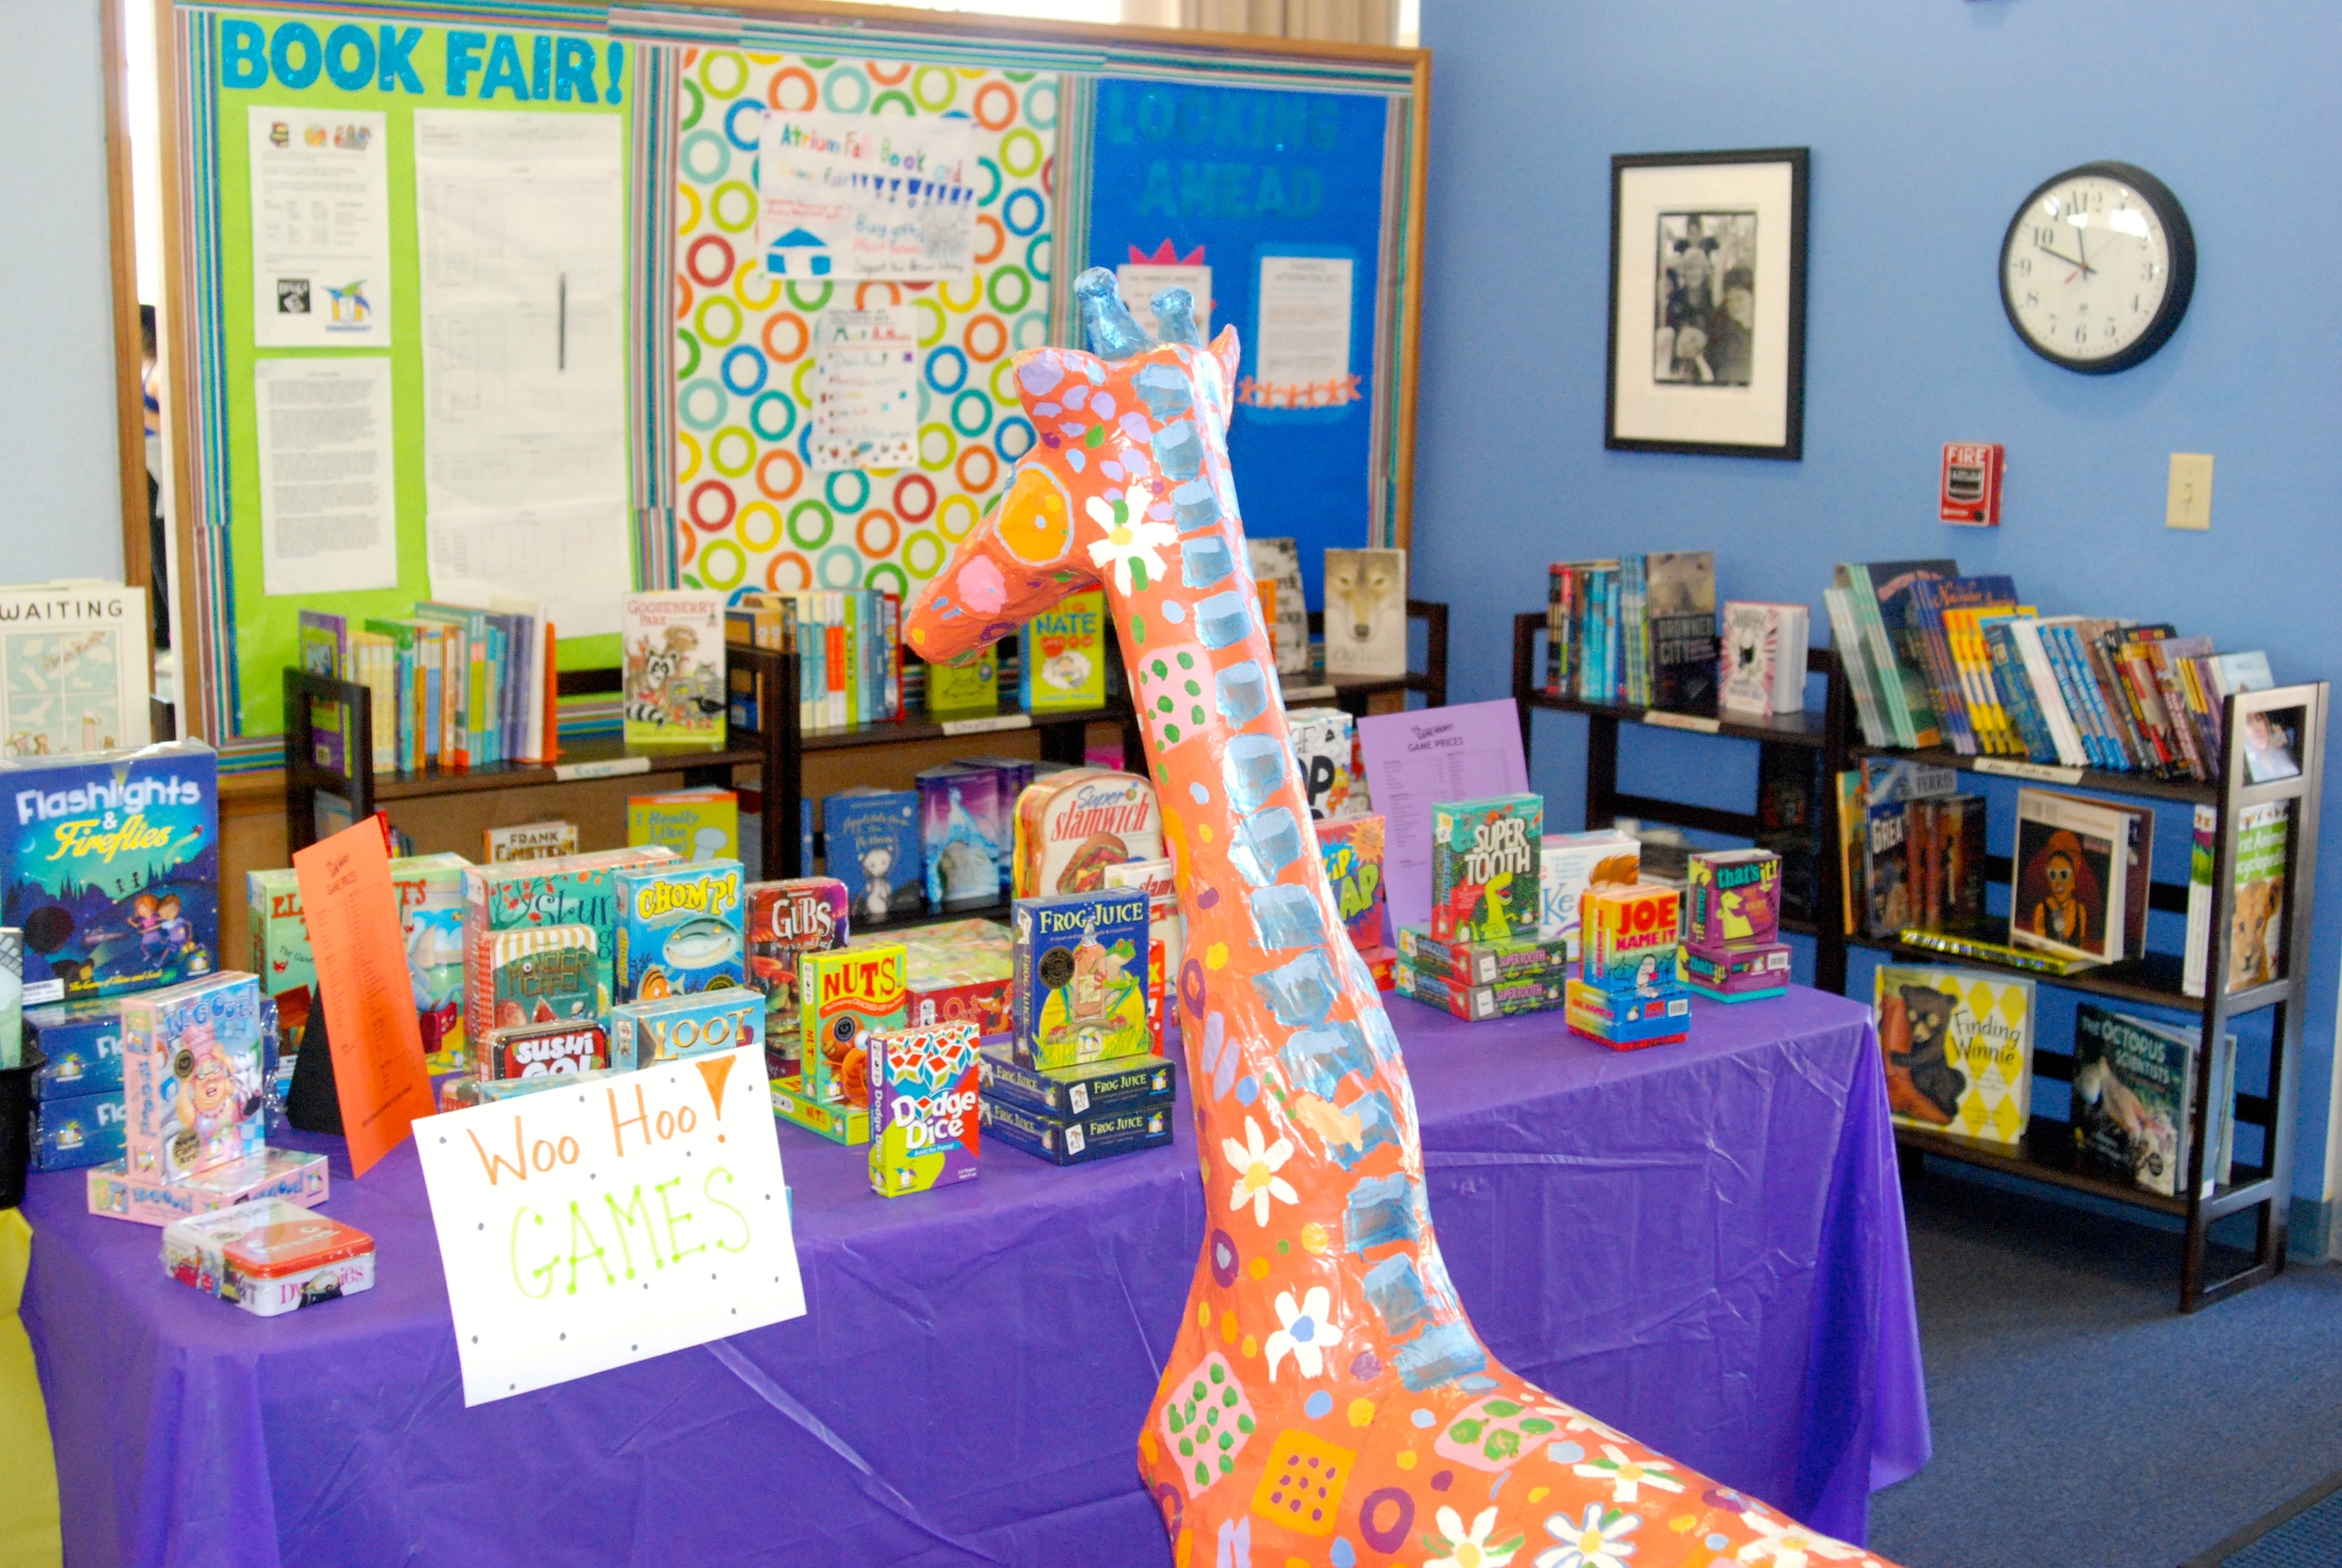 Giraffes love books